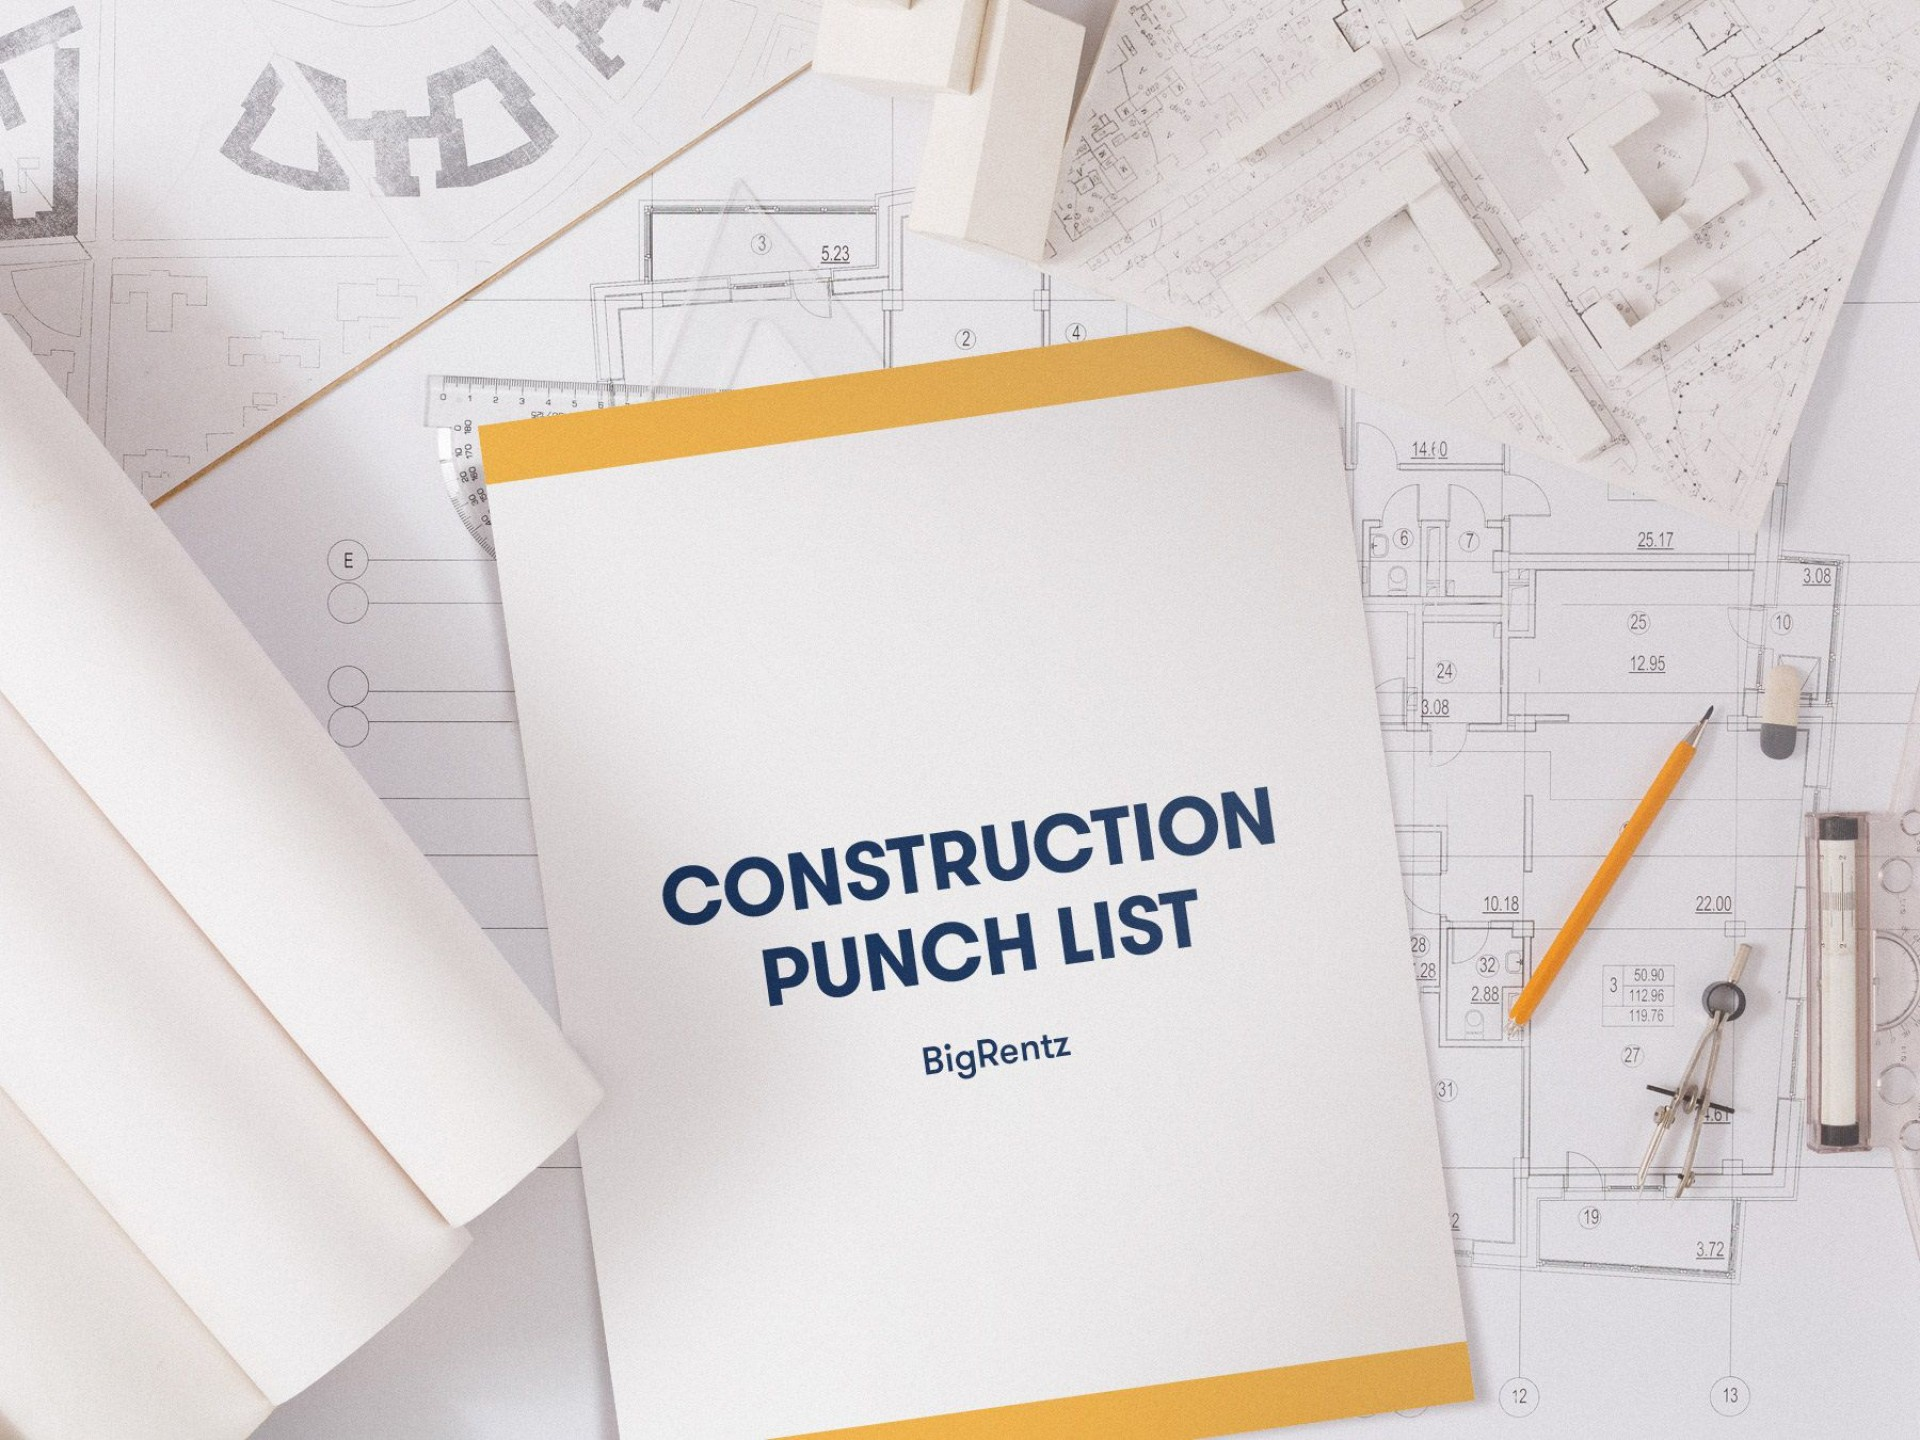 009 Marvelou Free Commercial Construction Punch List Template Photo 1920